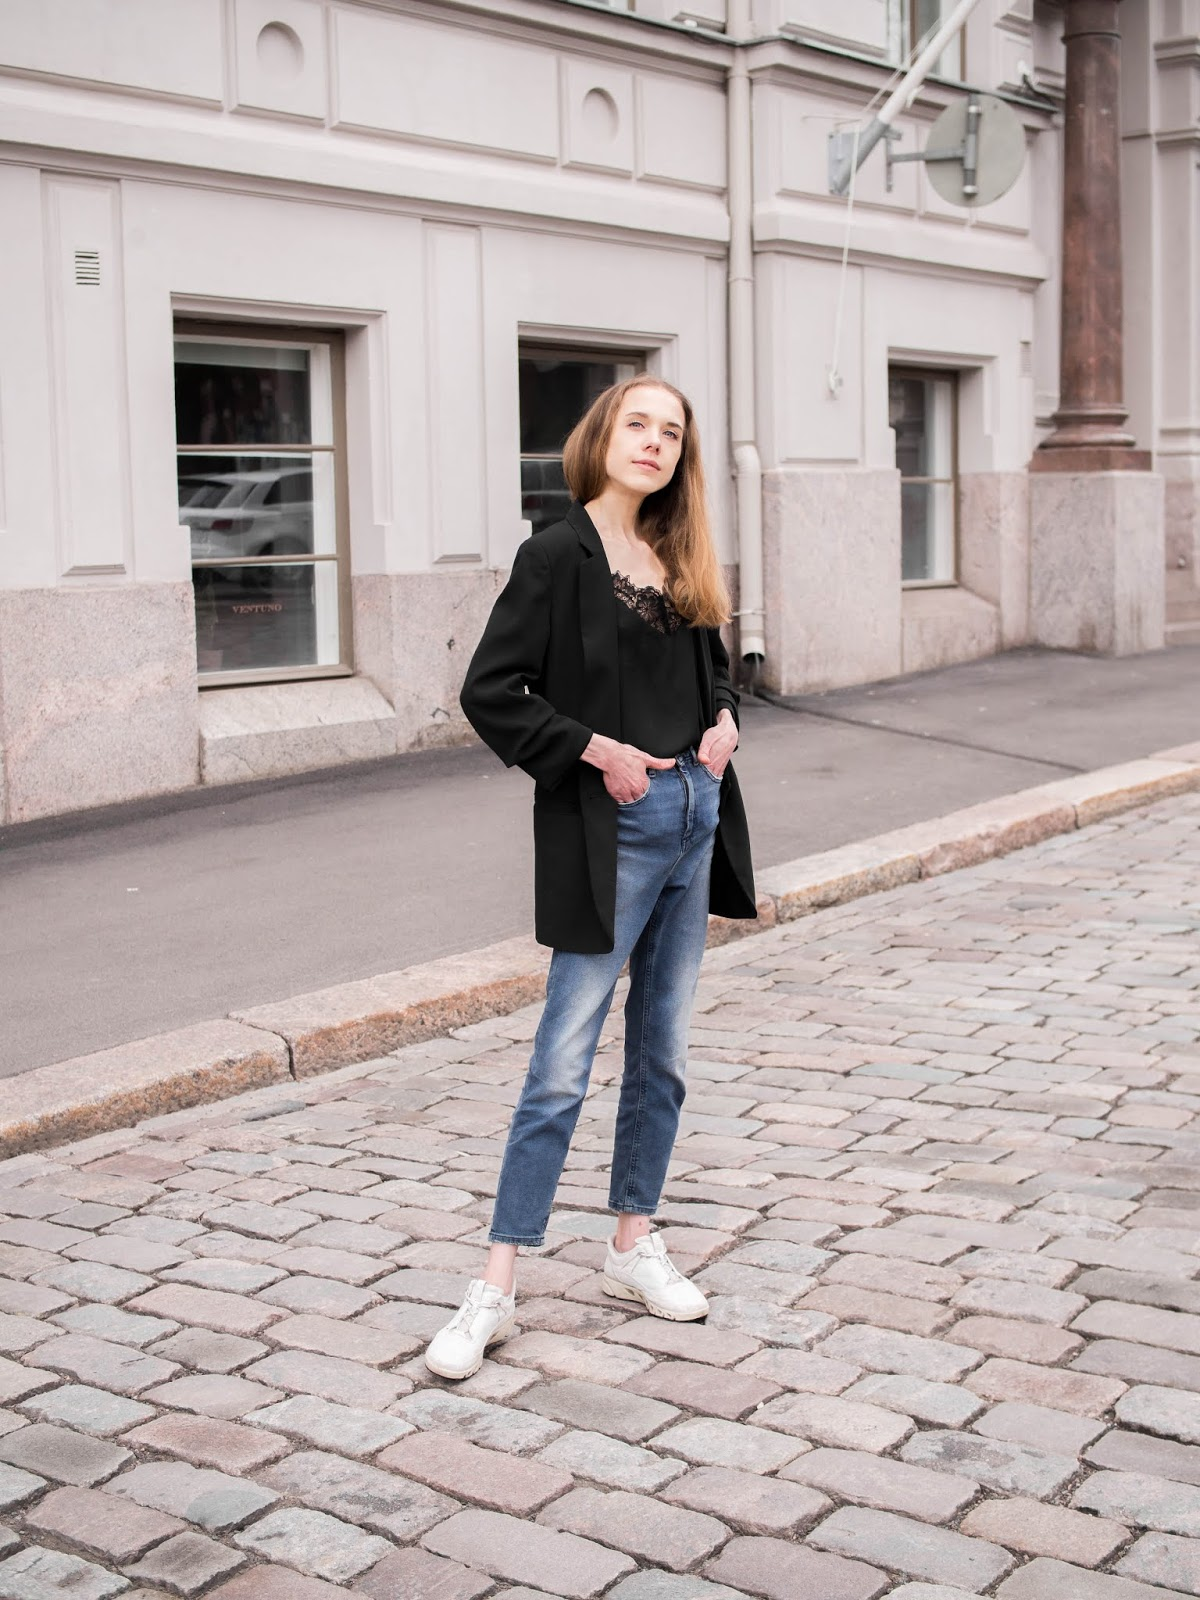 Living alone + outfit with mom jeans and blazer - Yksin asuminen + asu mutsifarkkujen ja bleiserin kanssa